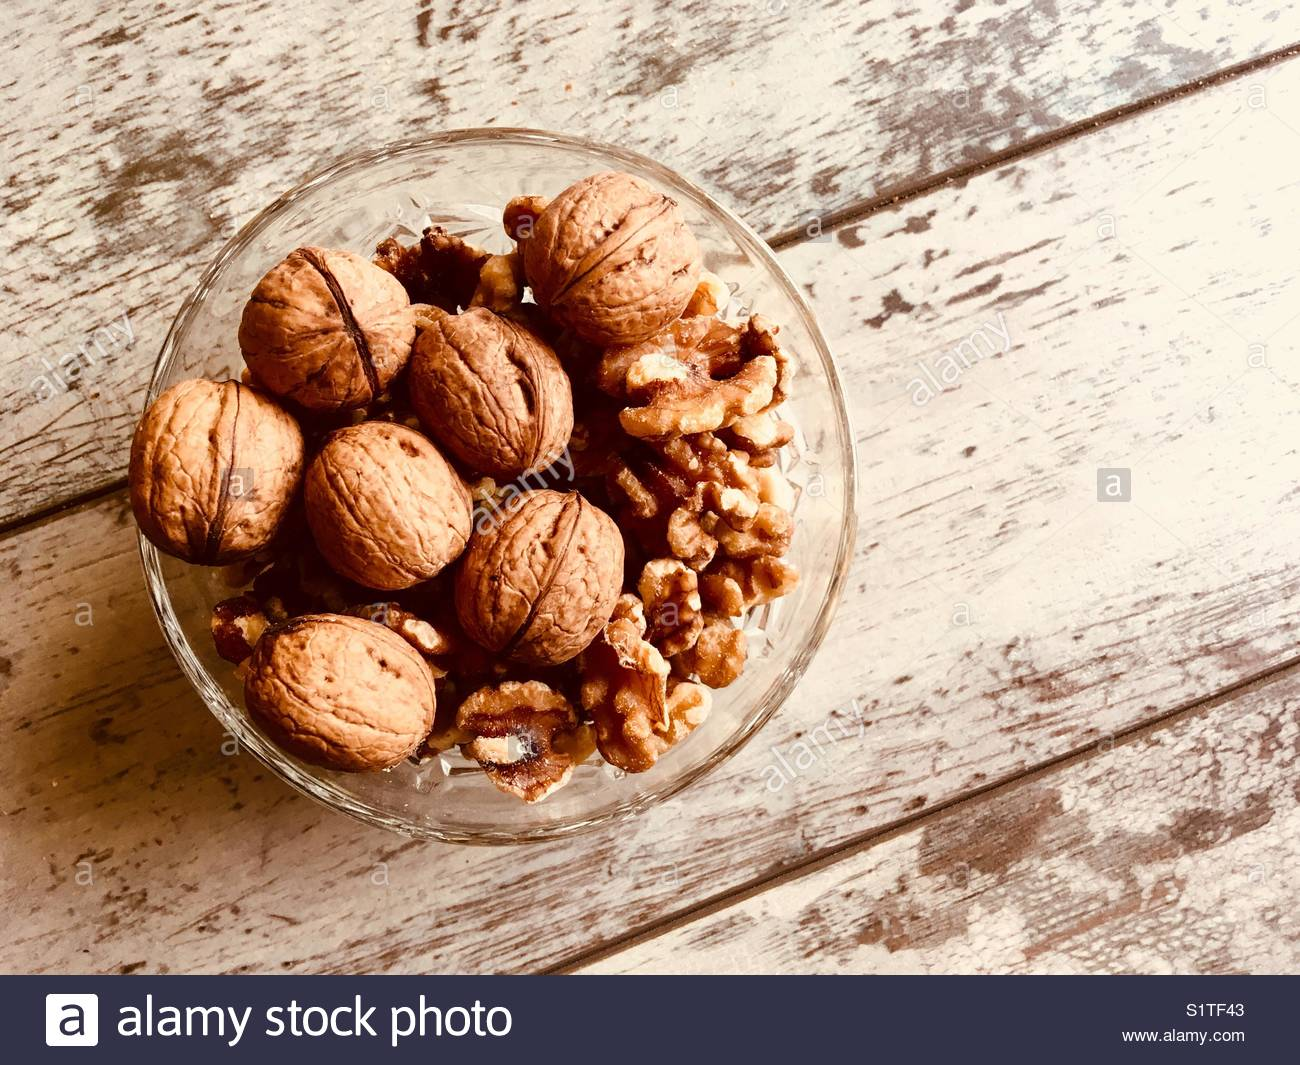 Walnuts presented in a glass bowl - copy space provided - Stock Image